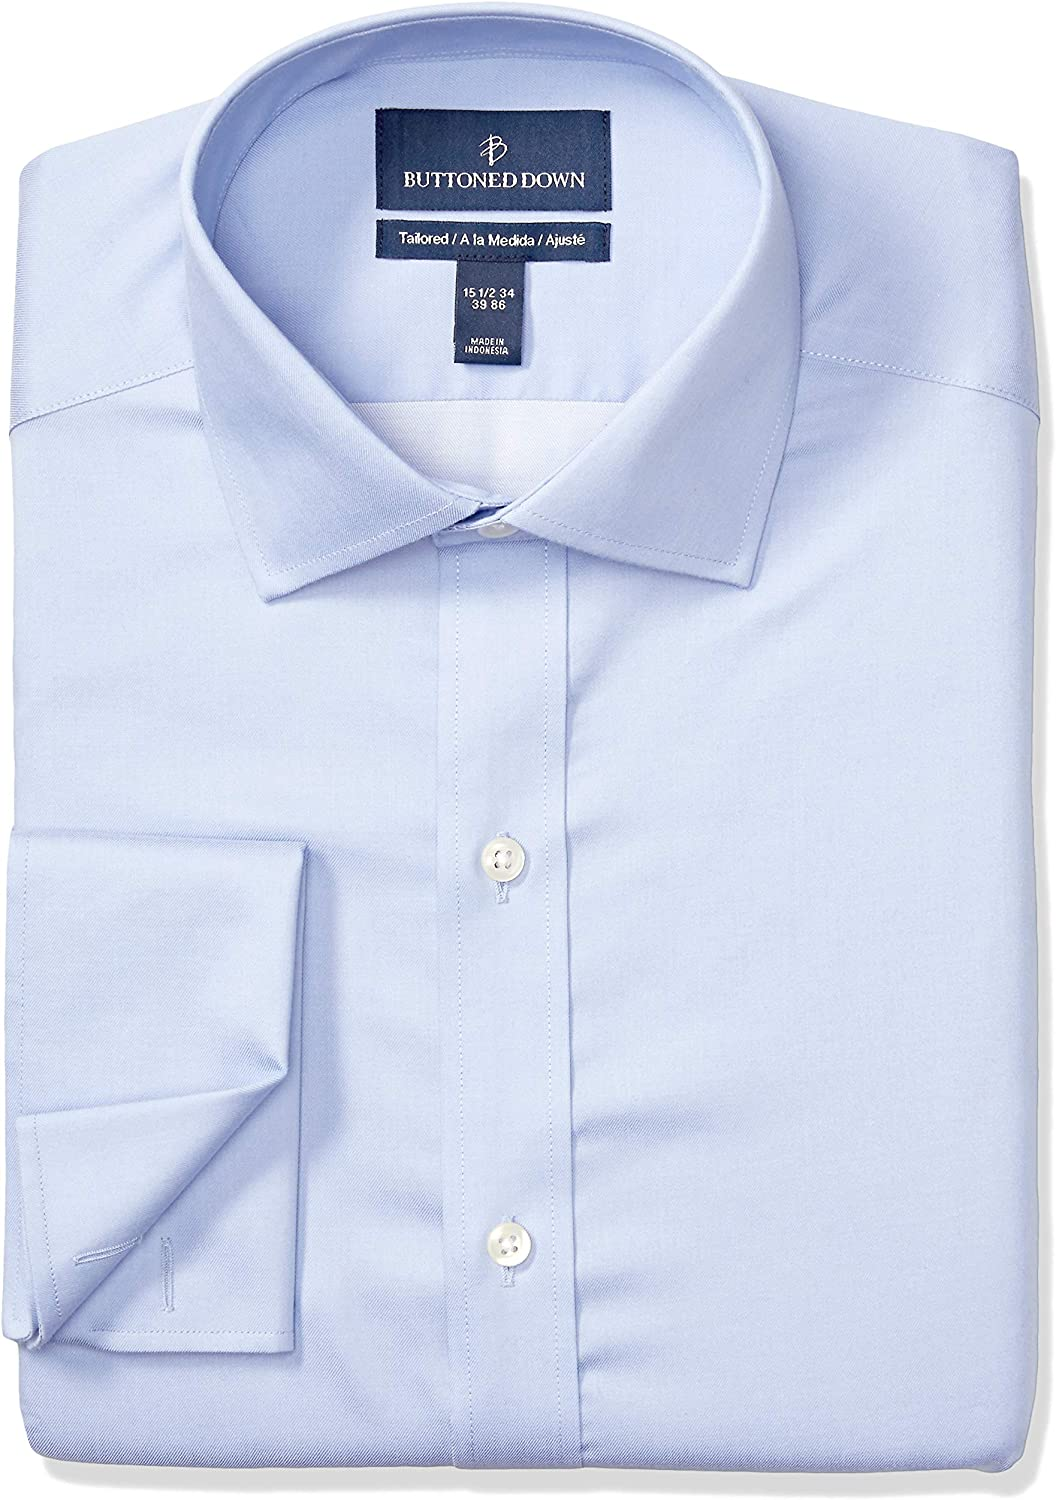 Buttoned Down お洒落 Men's Tailored Fit Shirt French Dress Supima 期間限定で特別価格 Cuff